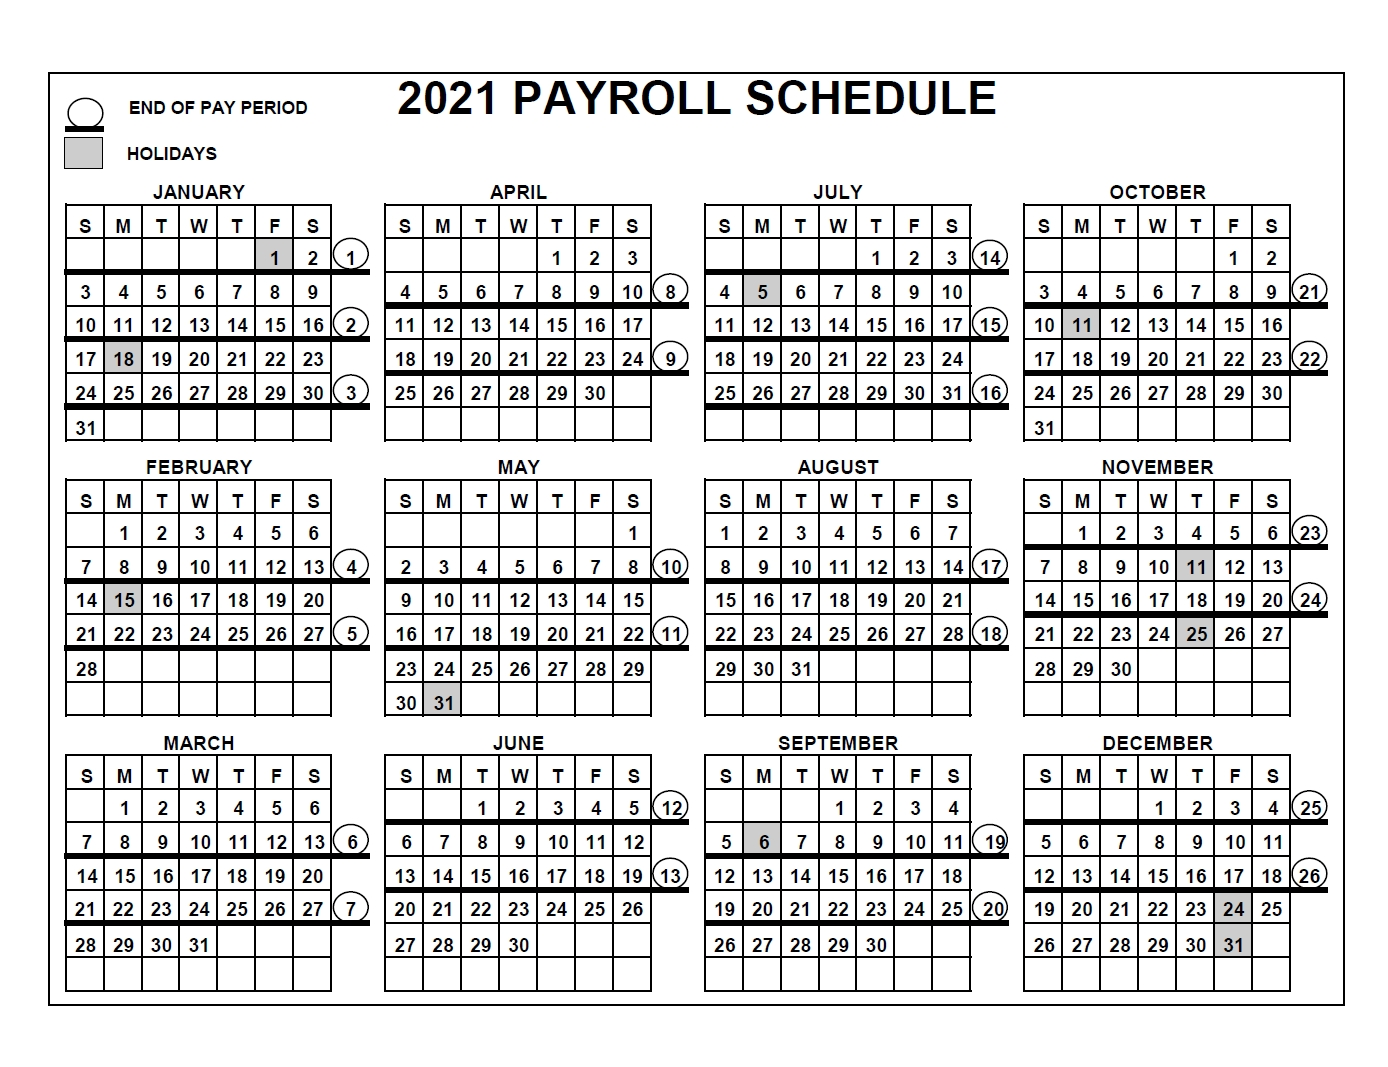 Pay Period Calendar 2021 / Your Pay / This Can Be Very Useful If You Are Looking For A Specific